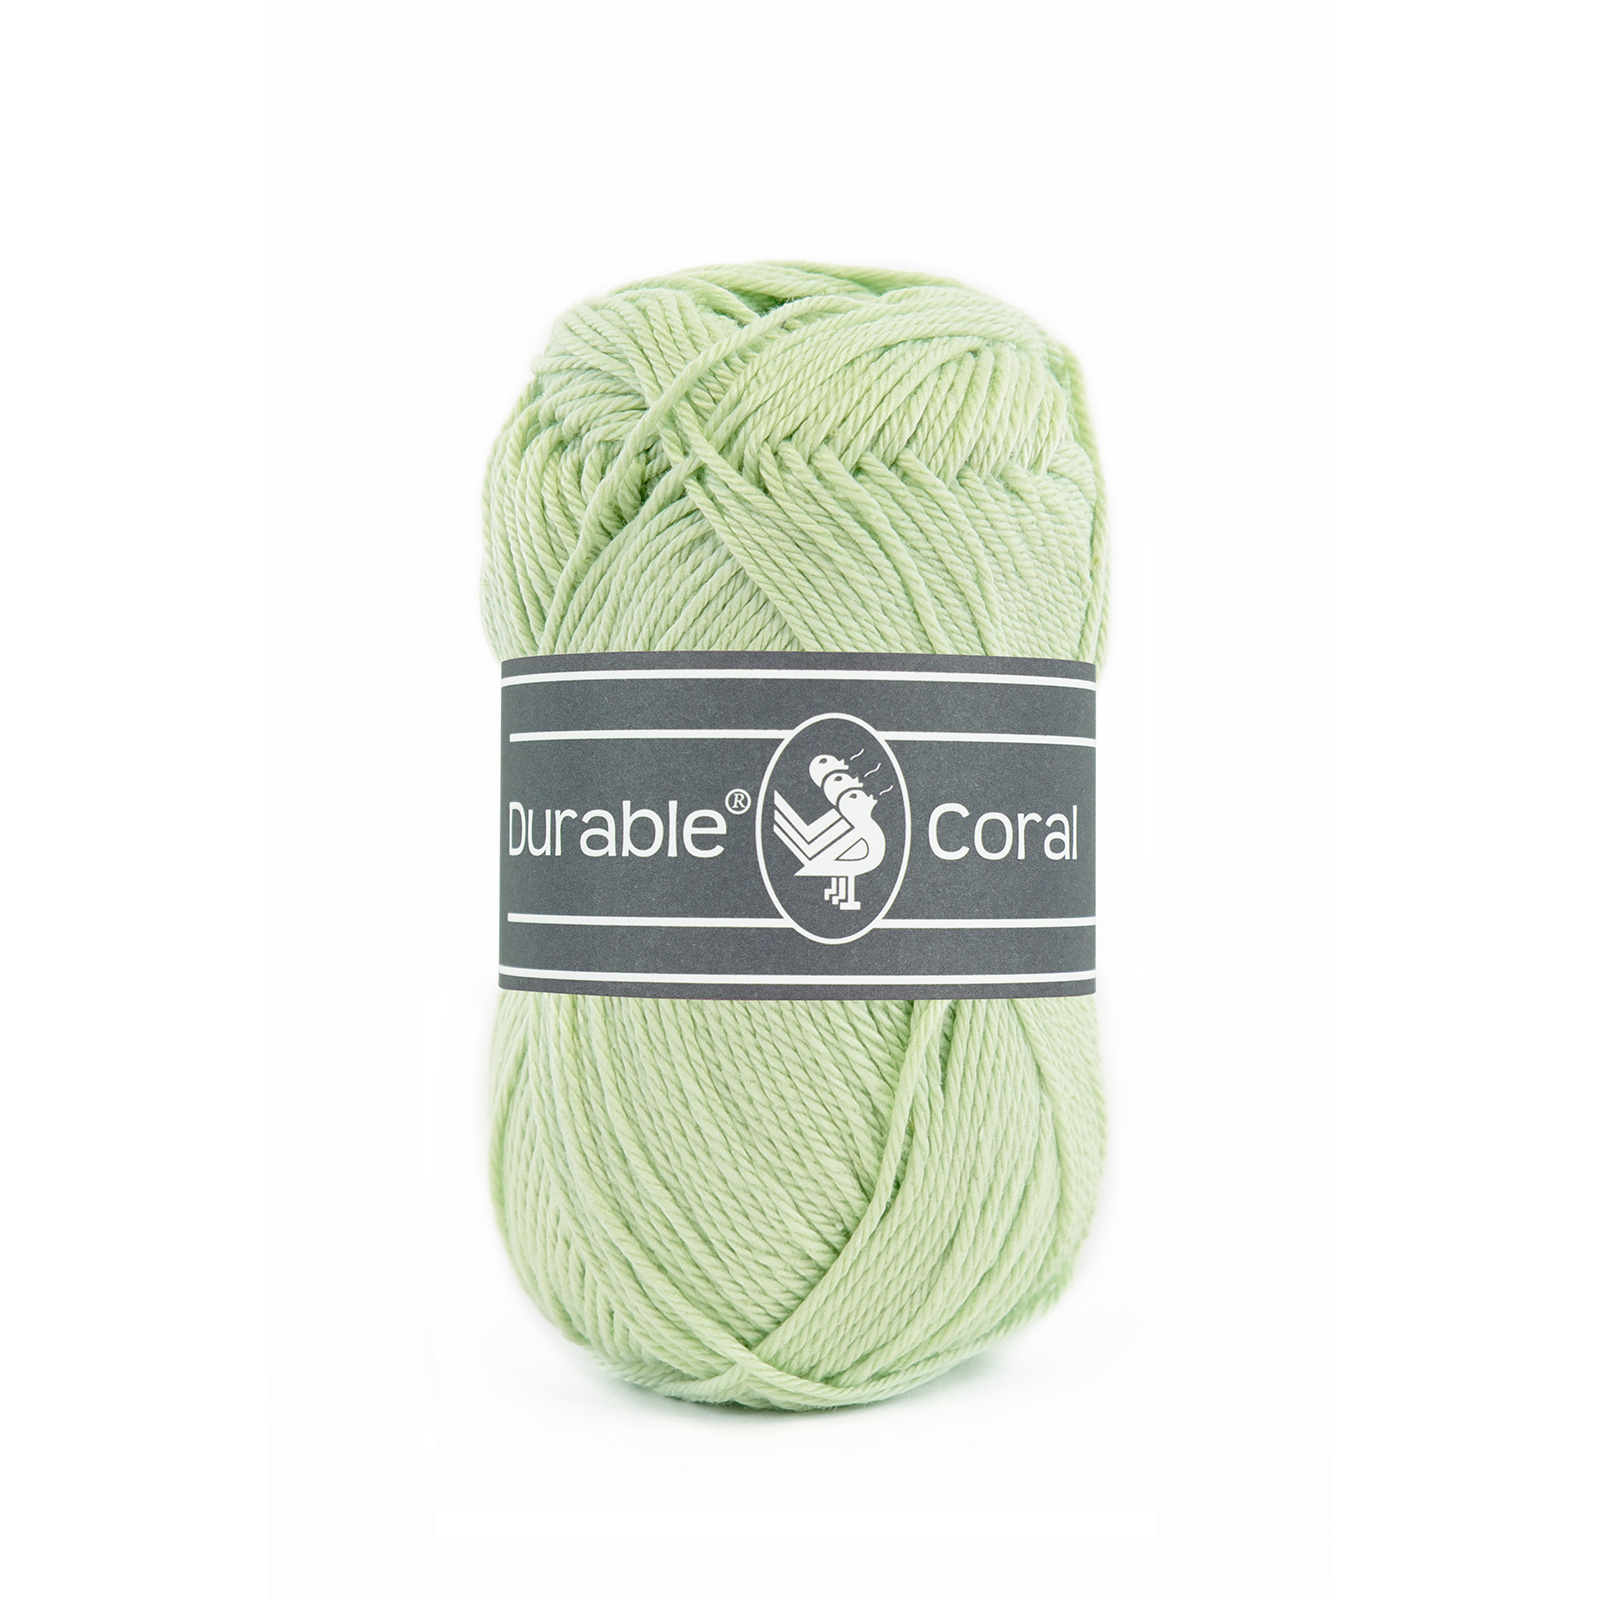 Coral – 2158 Light Green